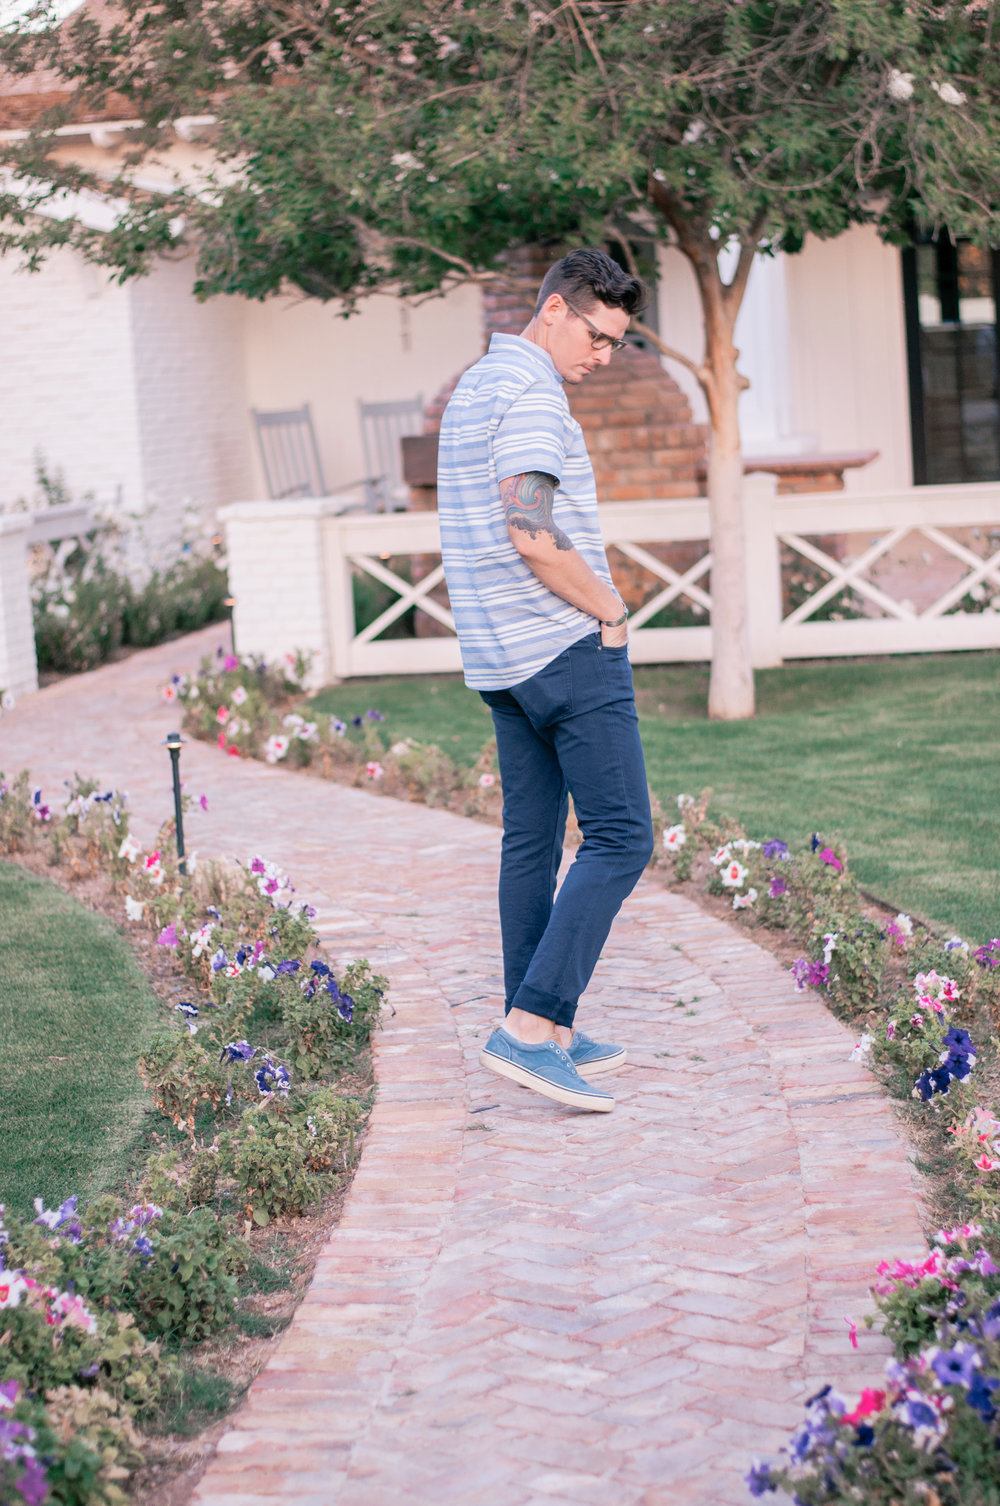 Cool Men's Casual Outfits With Sneakers for Summer